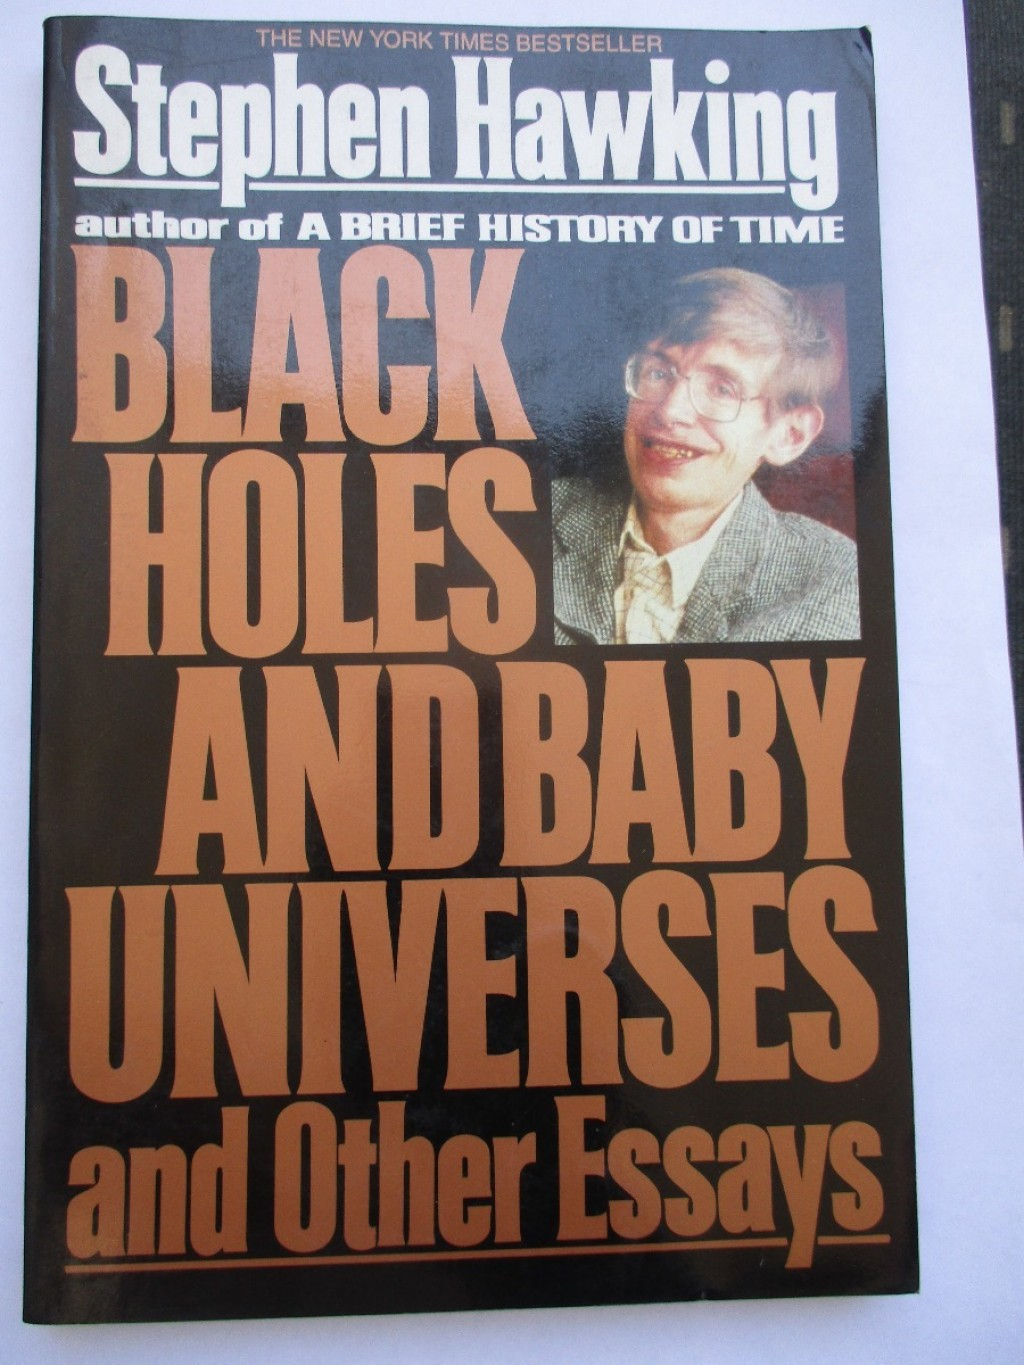 017 Black Holes And Baby Universes Other Essays Essay Example Stephen Hawking D Nq Np 965748 Mlc27099404600 032018 Unique Review Ebook Free Download Amazon Large